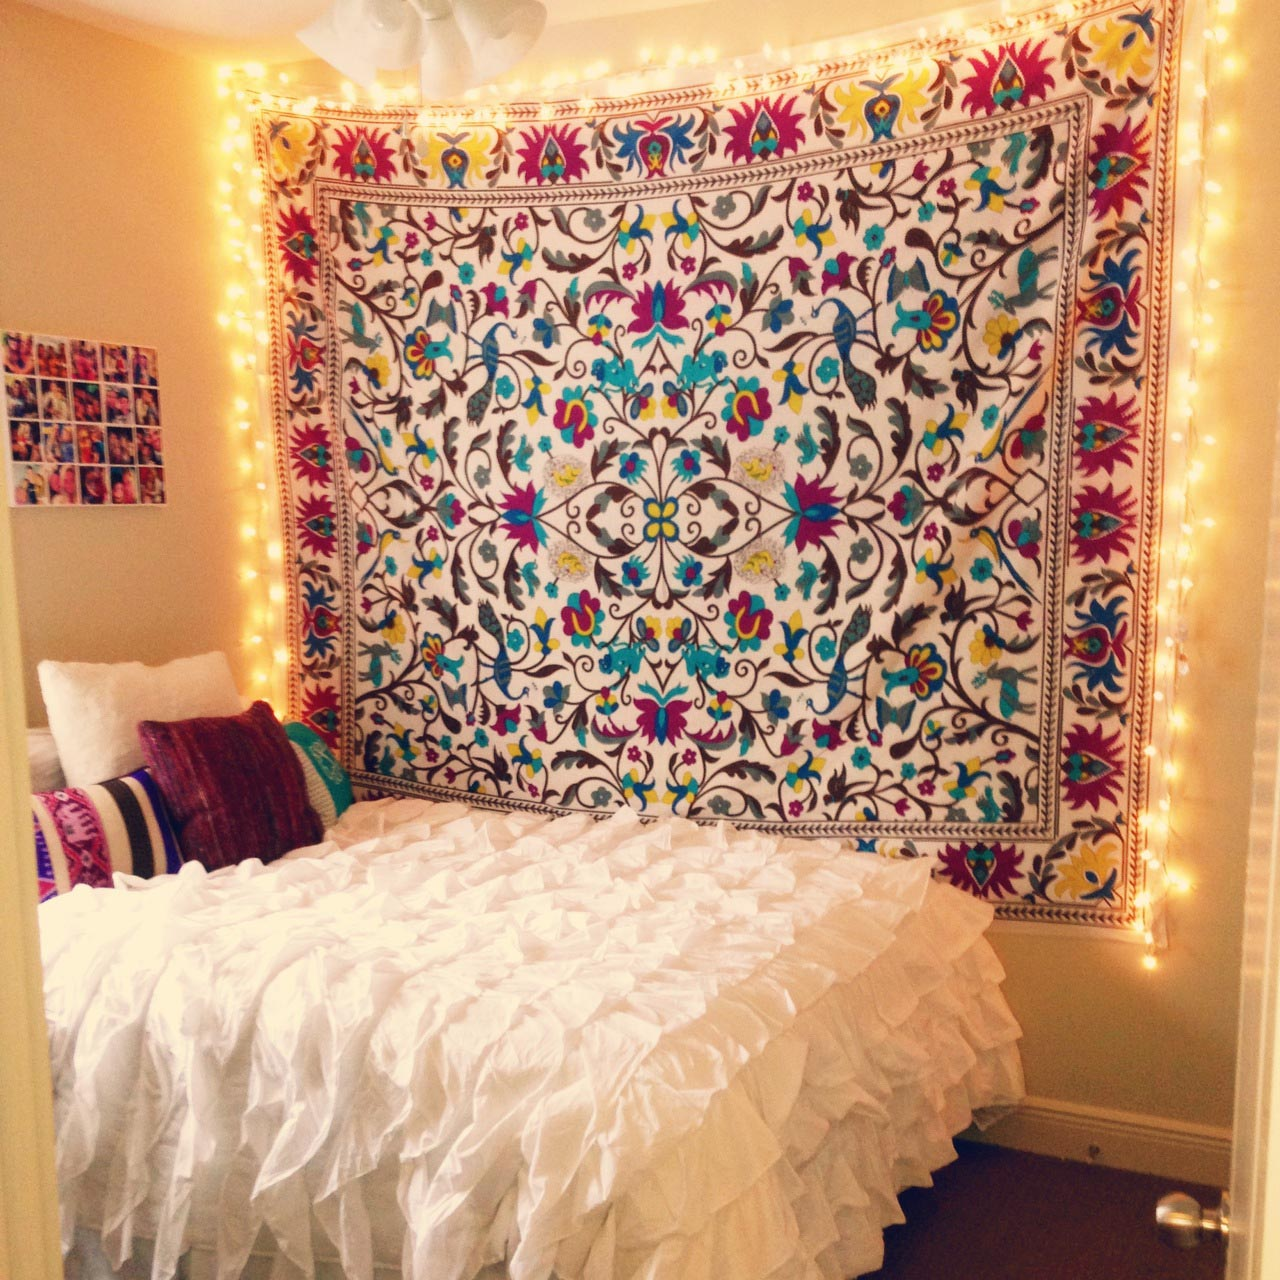 Wall Decoration For College : College wall tapestries best decor things